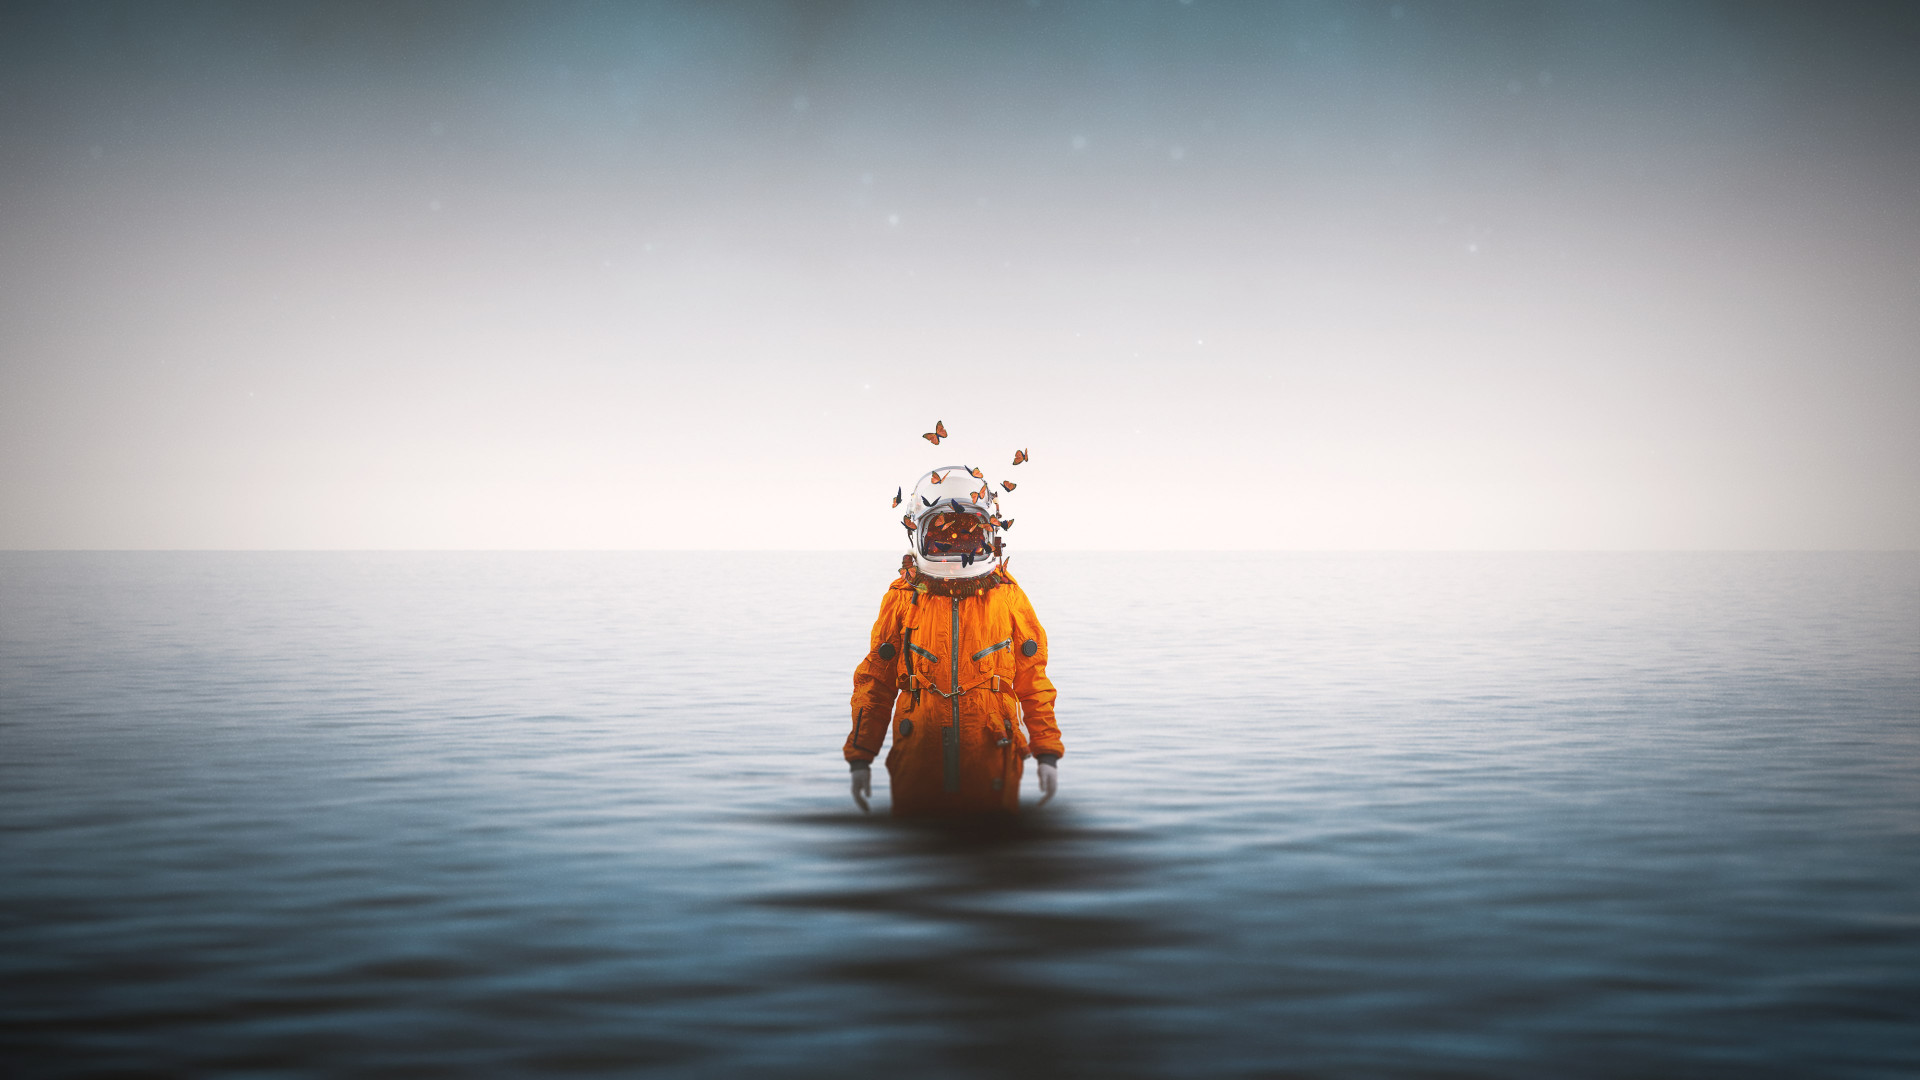 Lonely astronaut wallpaper 1920x1080